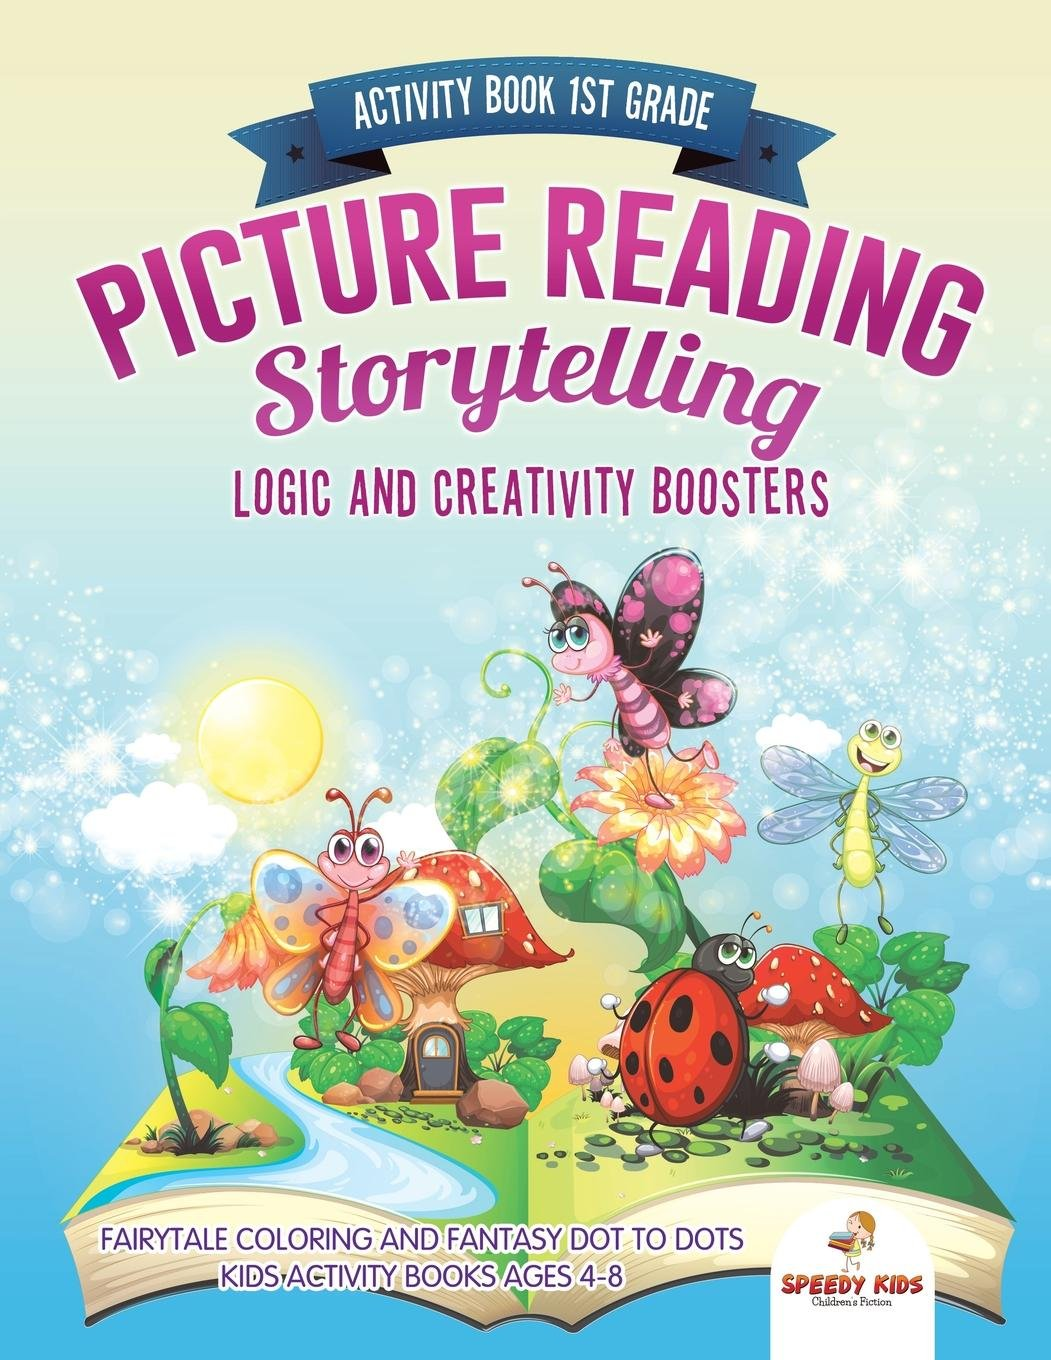 Activity Book 1st Grade  Picture Reading Storytelling  Logic